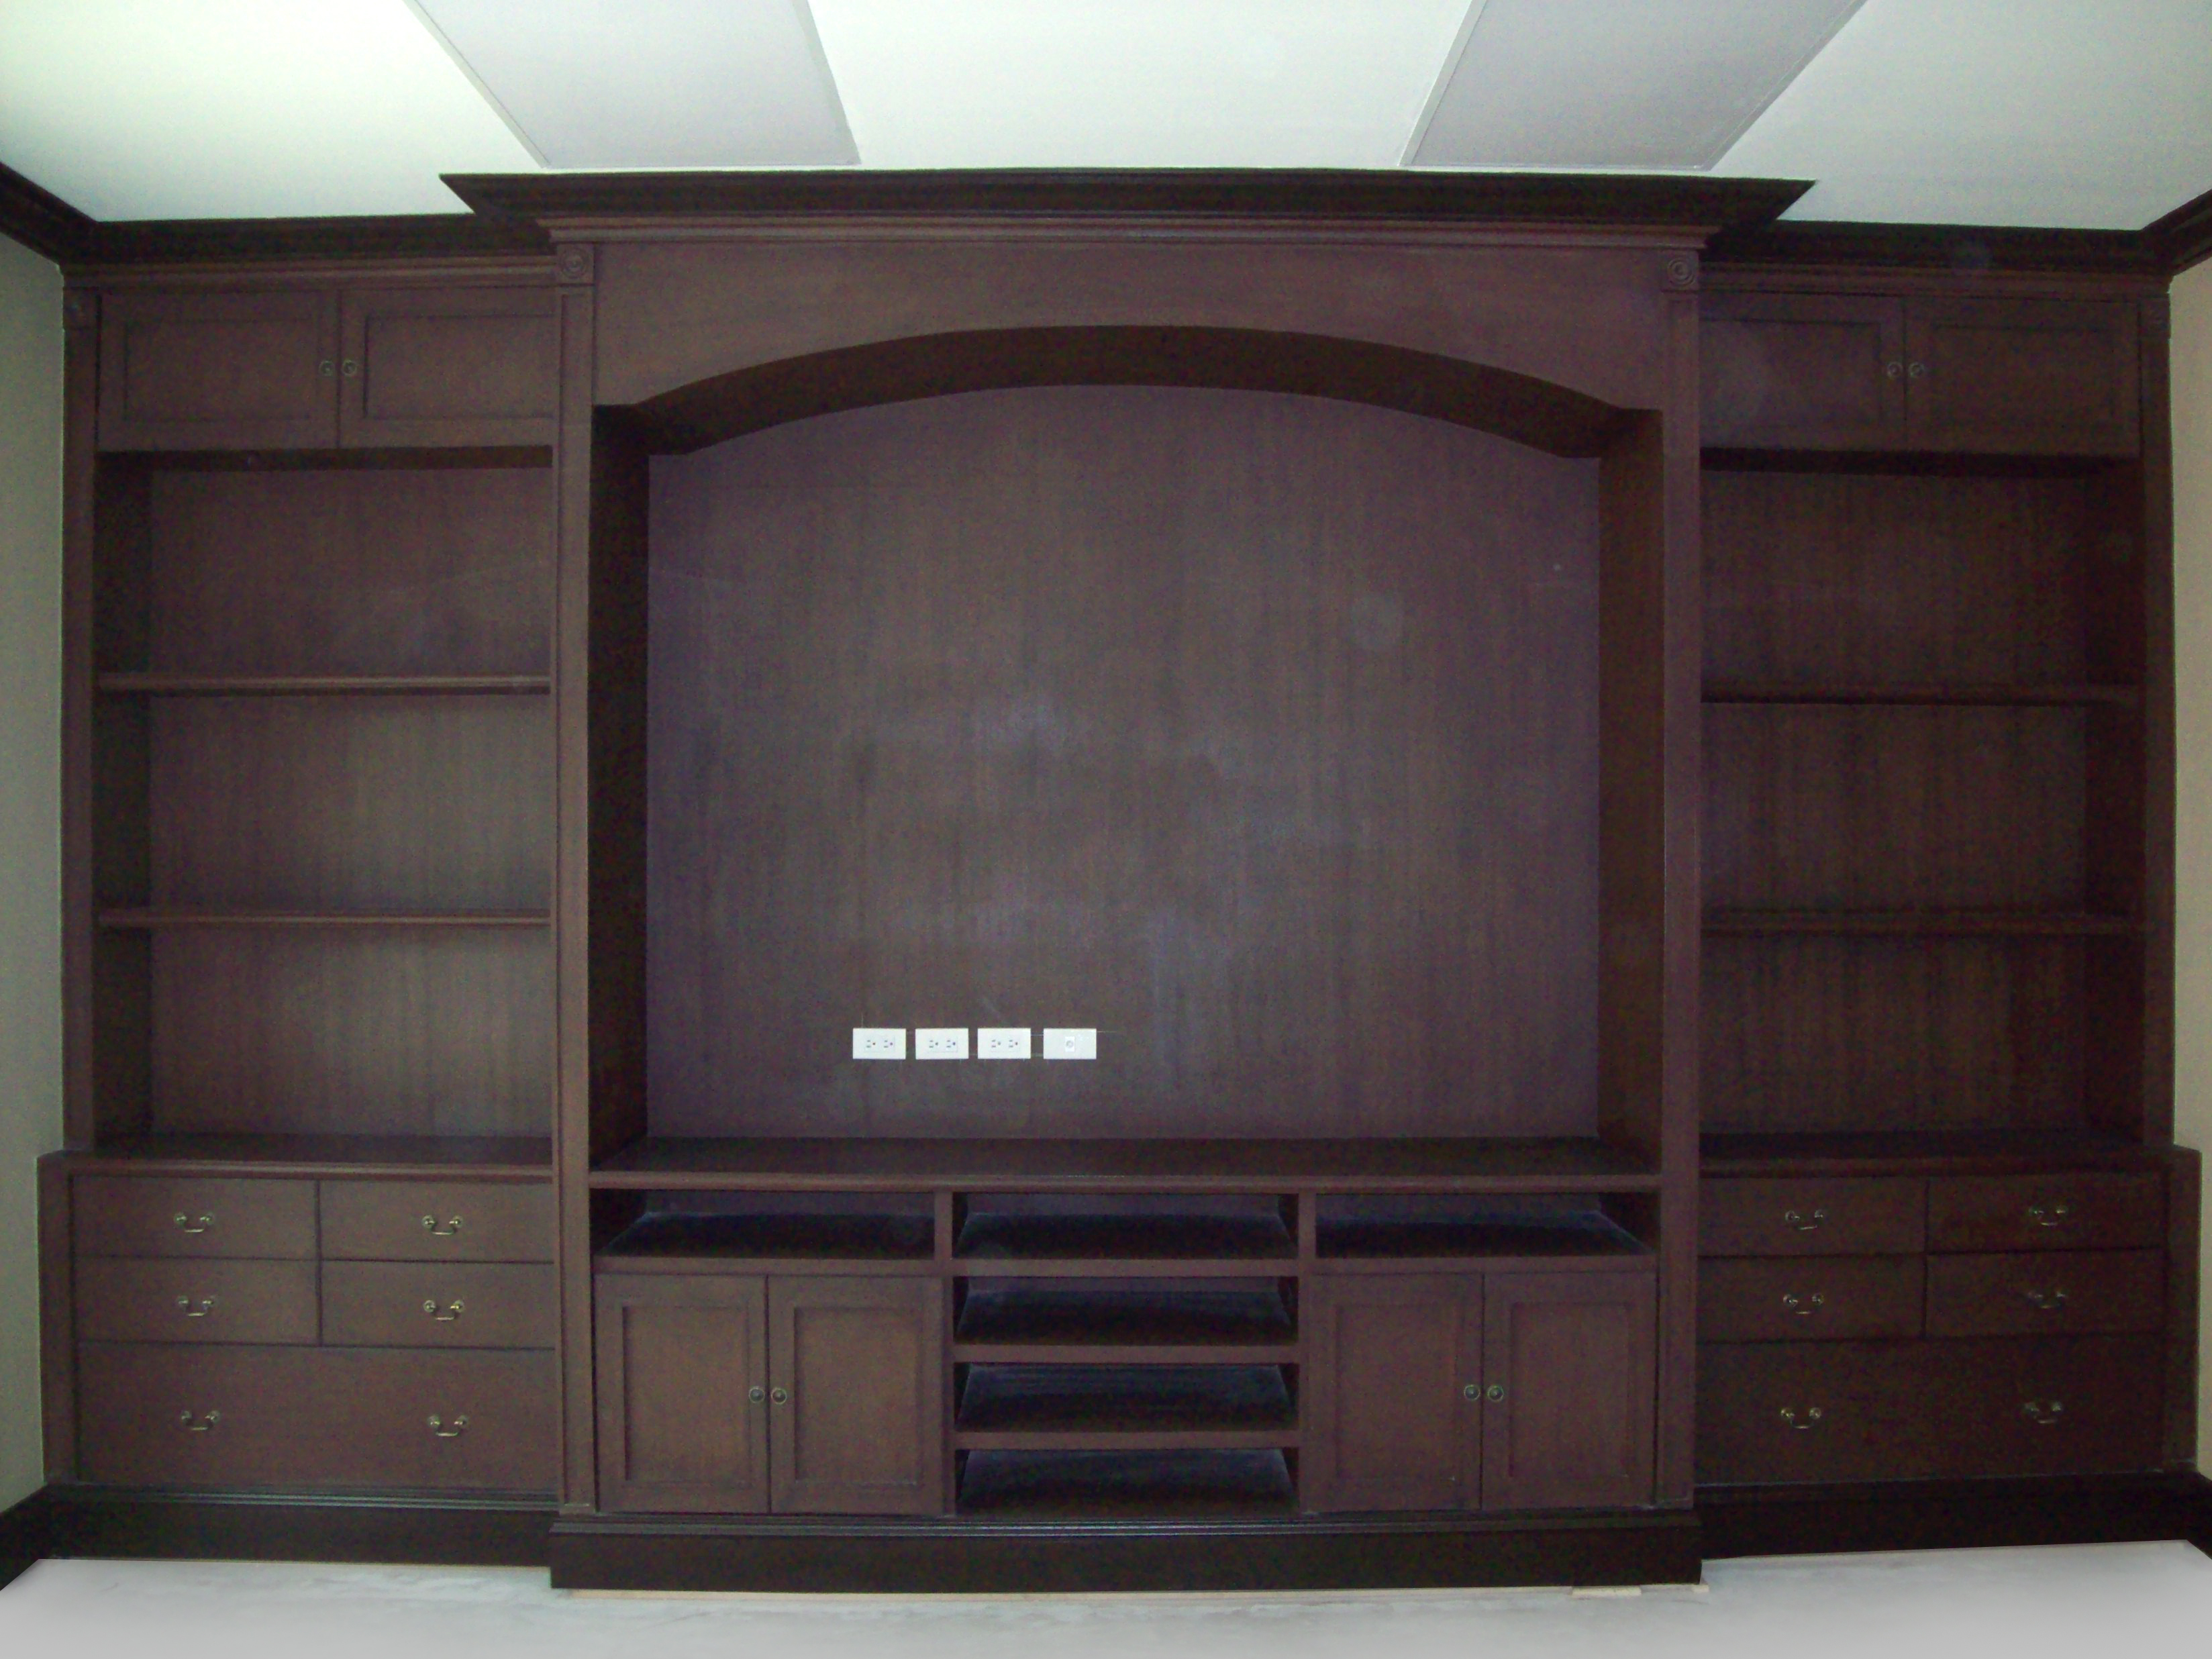 Built in storage cabinets easywood products for Built in kitchen cabinets philippines